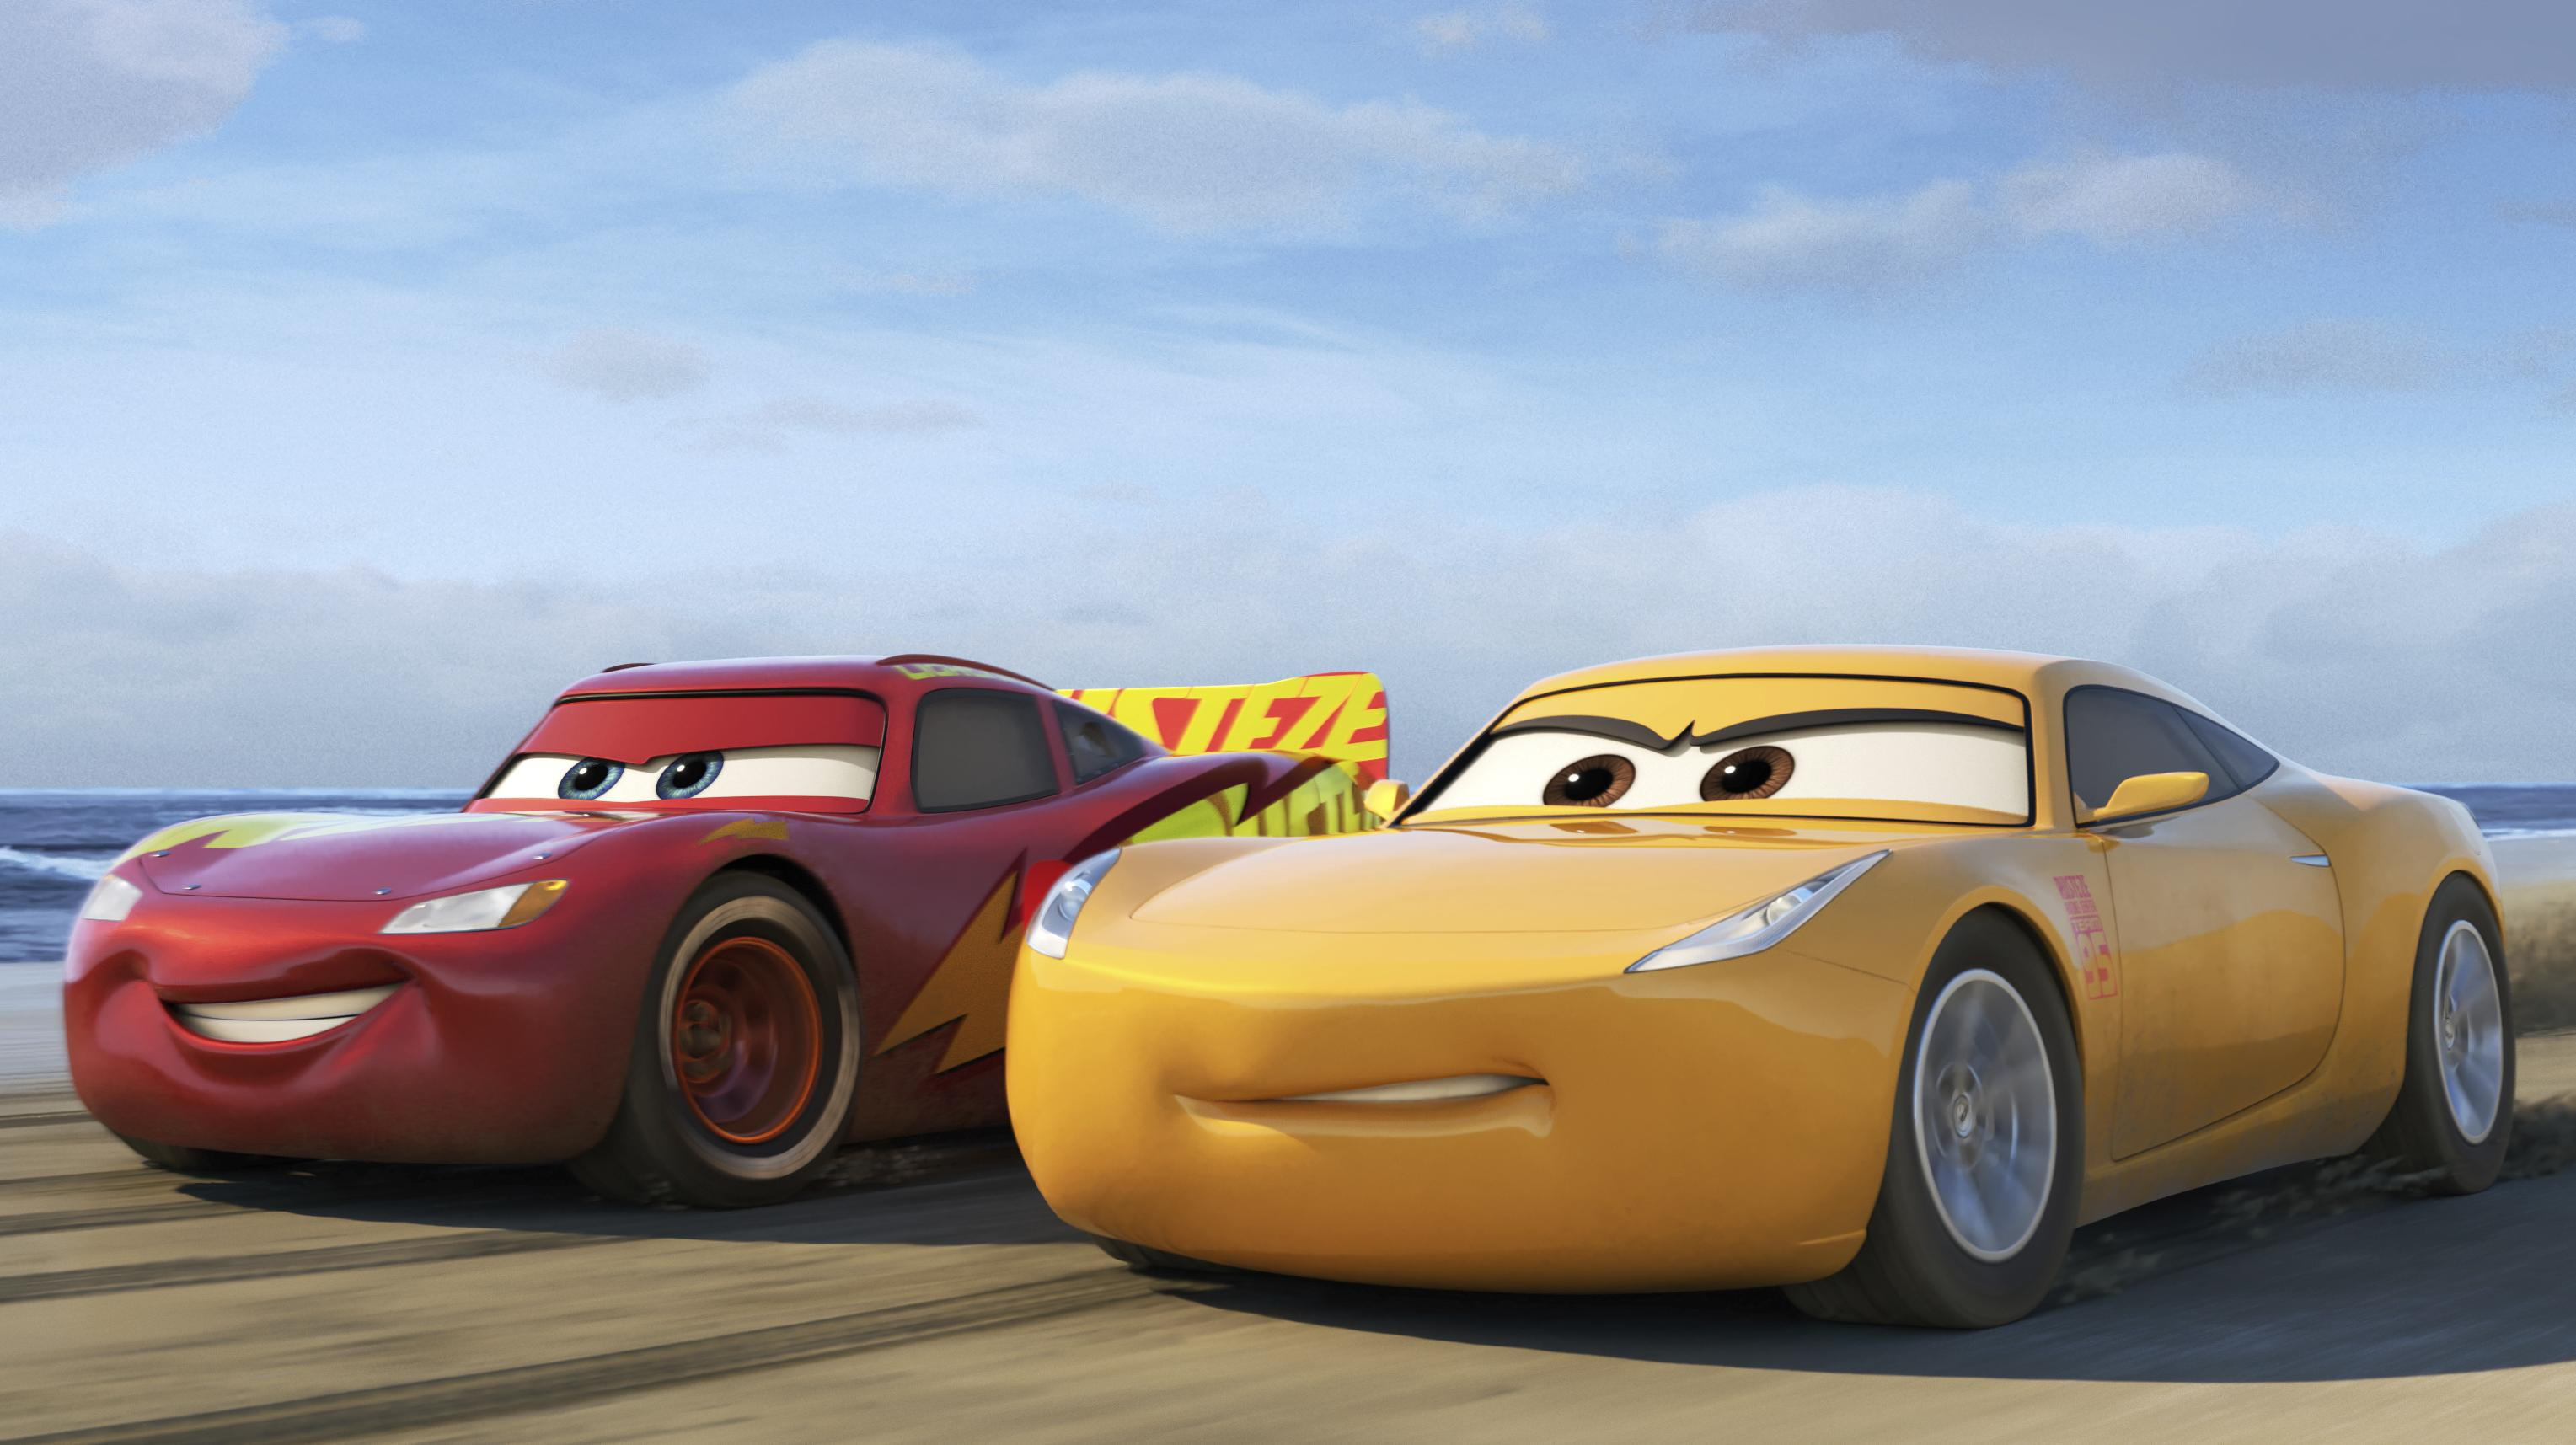 Cars 3 Movie Hd Movies 4k Wallpapers Images Backgrounds